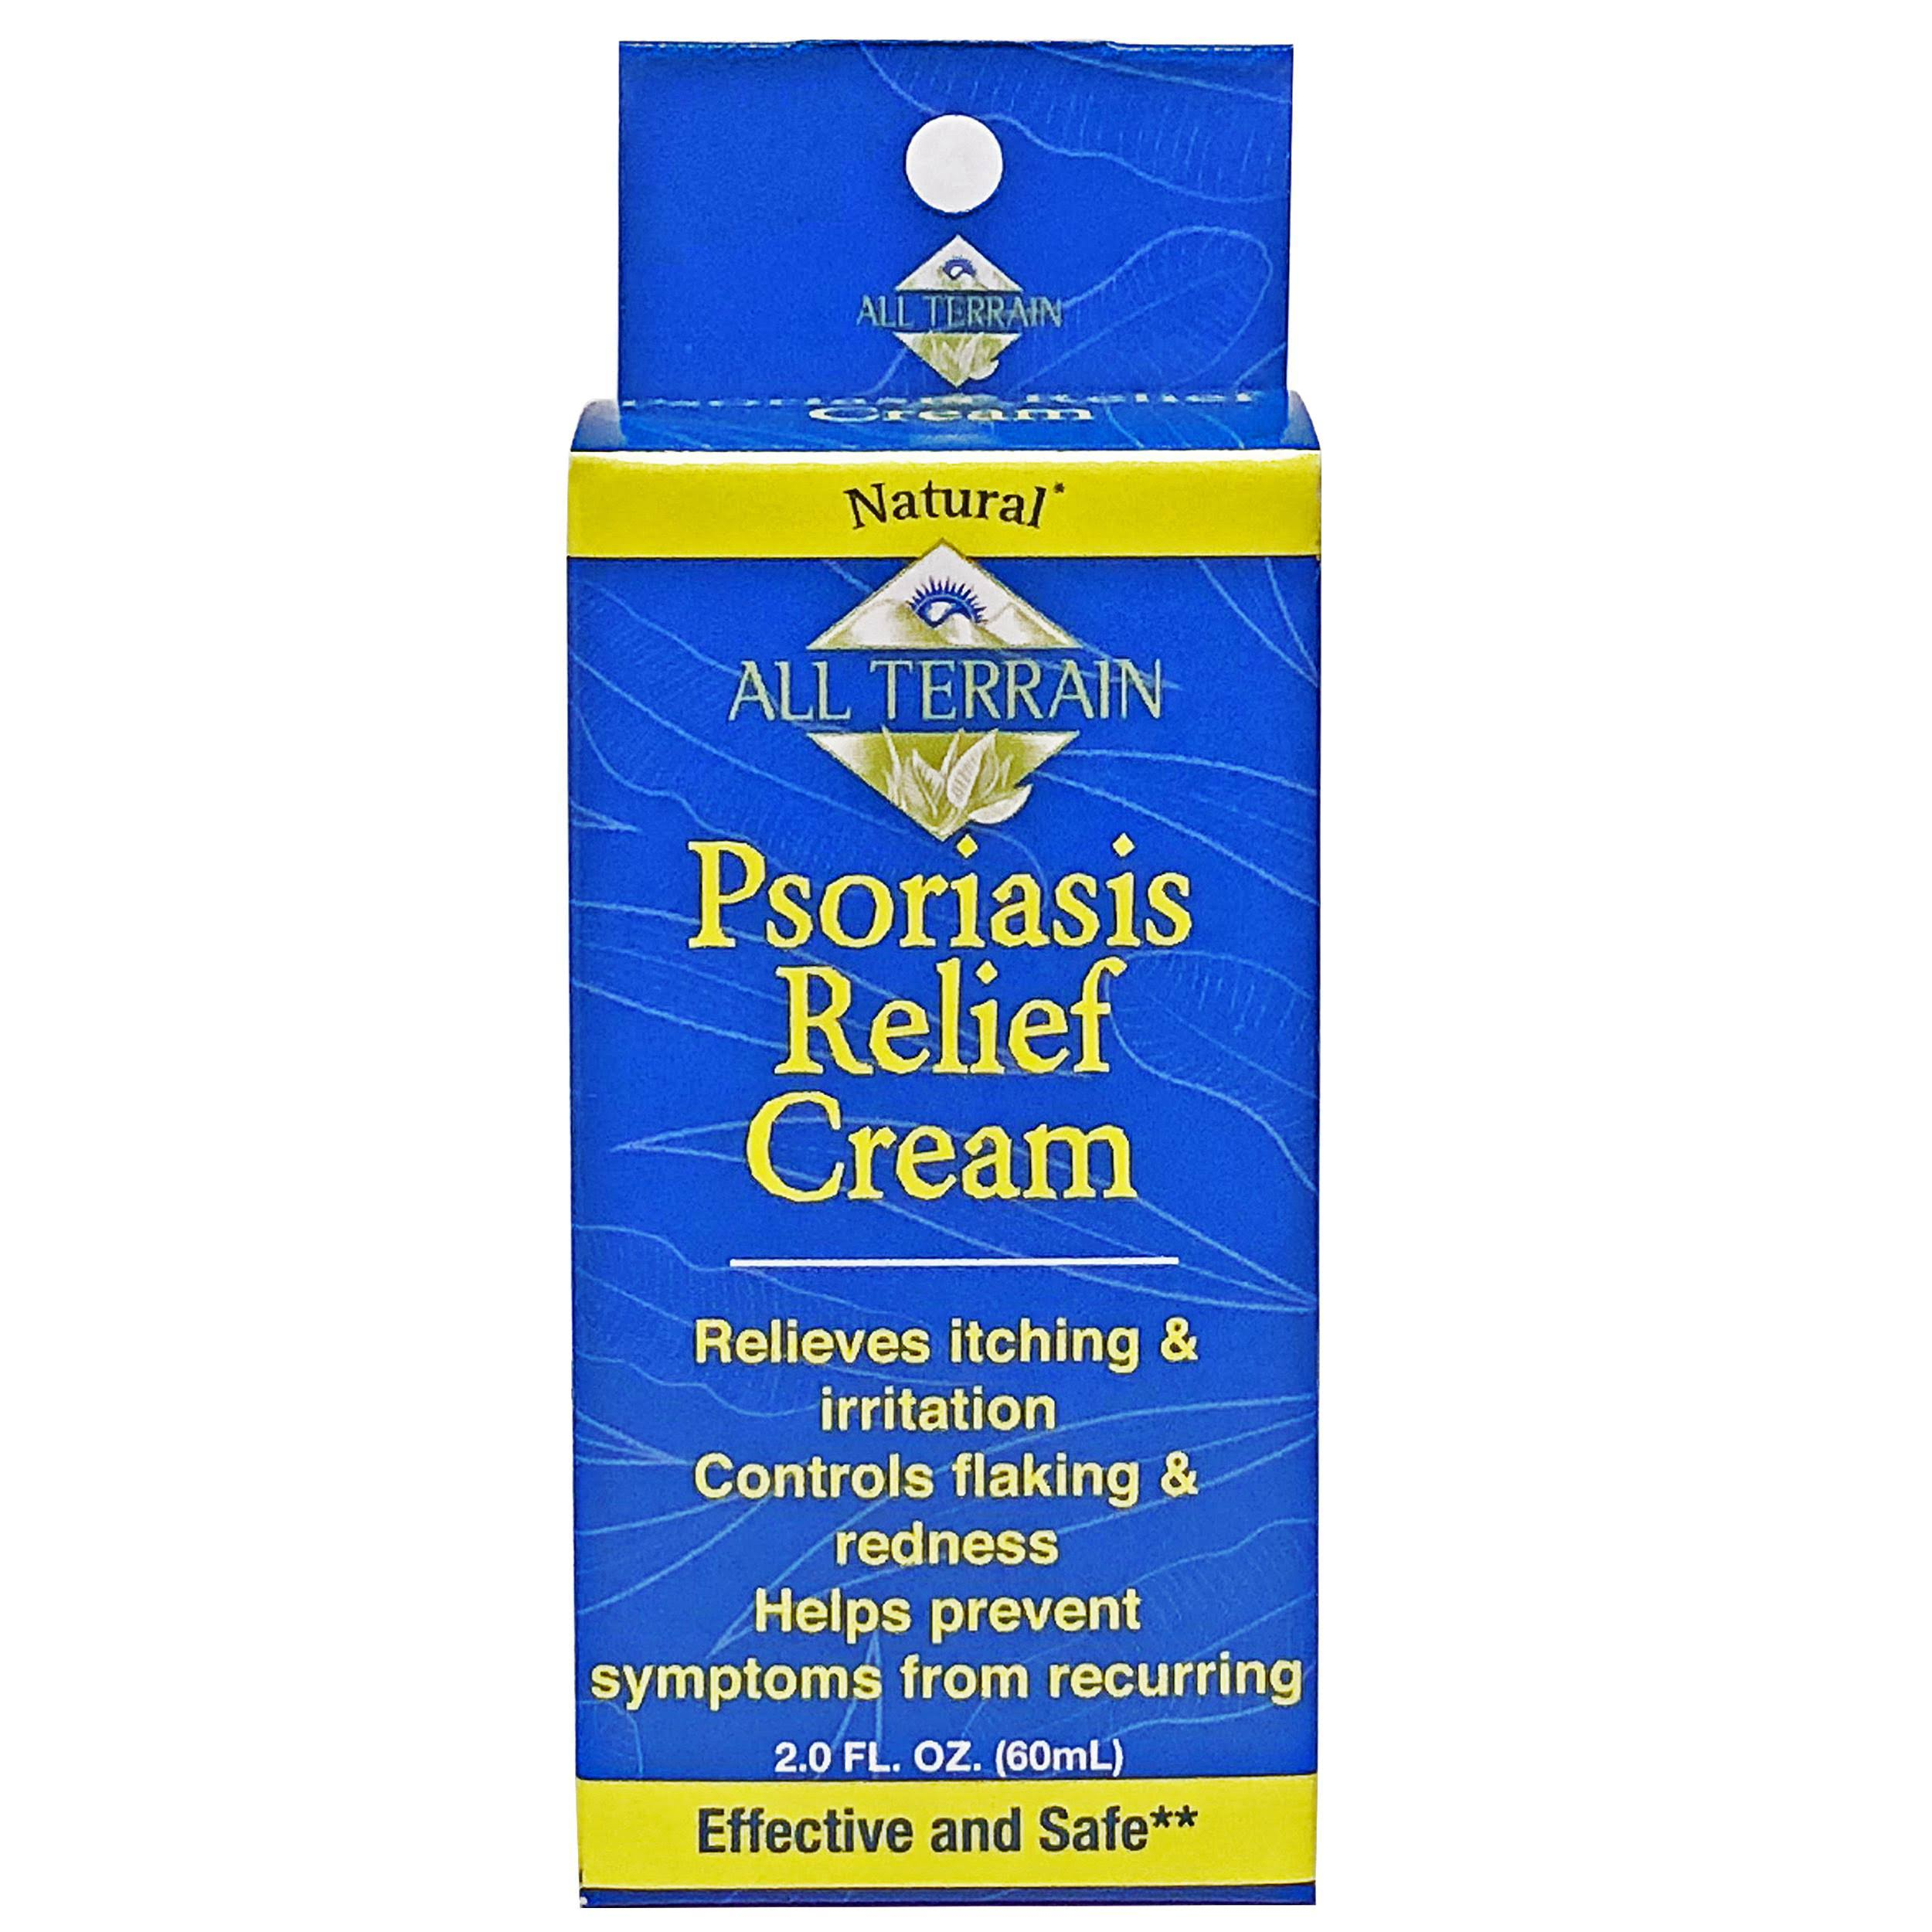 All Terrain Psoriasis Relief Cream - 2oz